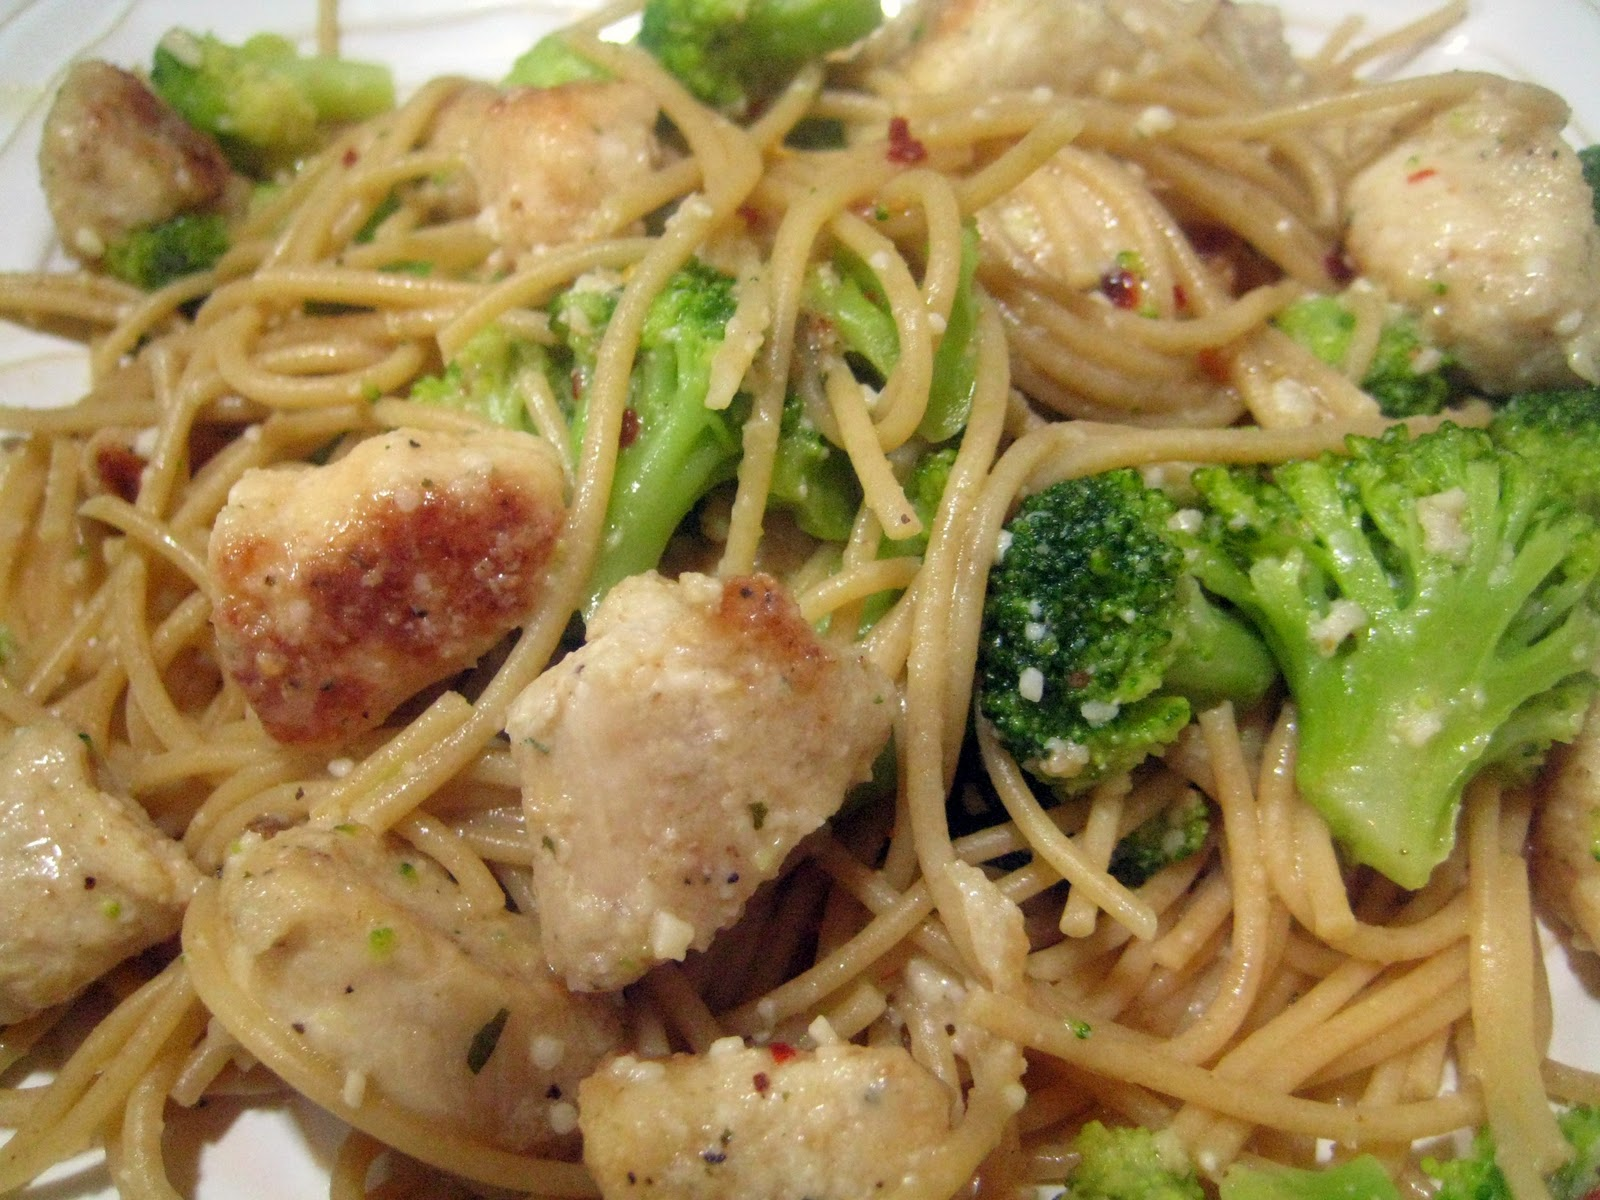 A bitchin kitchen chicken and broccoli pasta with white wine sauce chicken and broccoli pasta with white wine sauce forumfinder